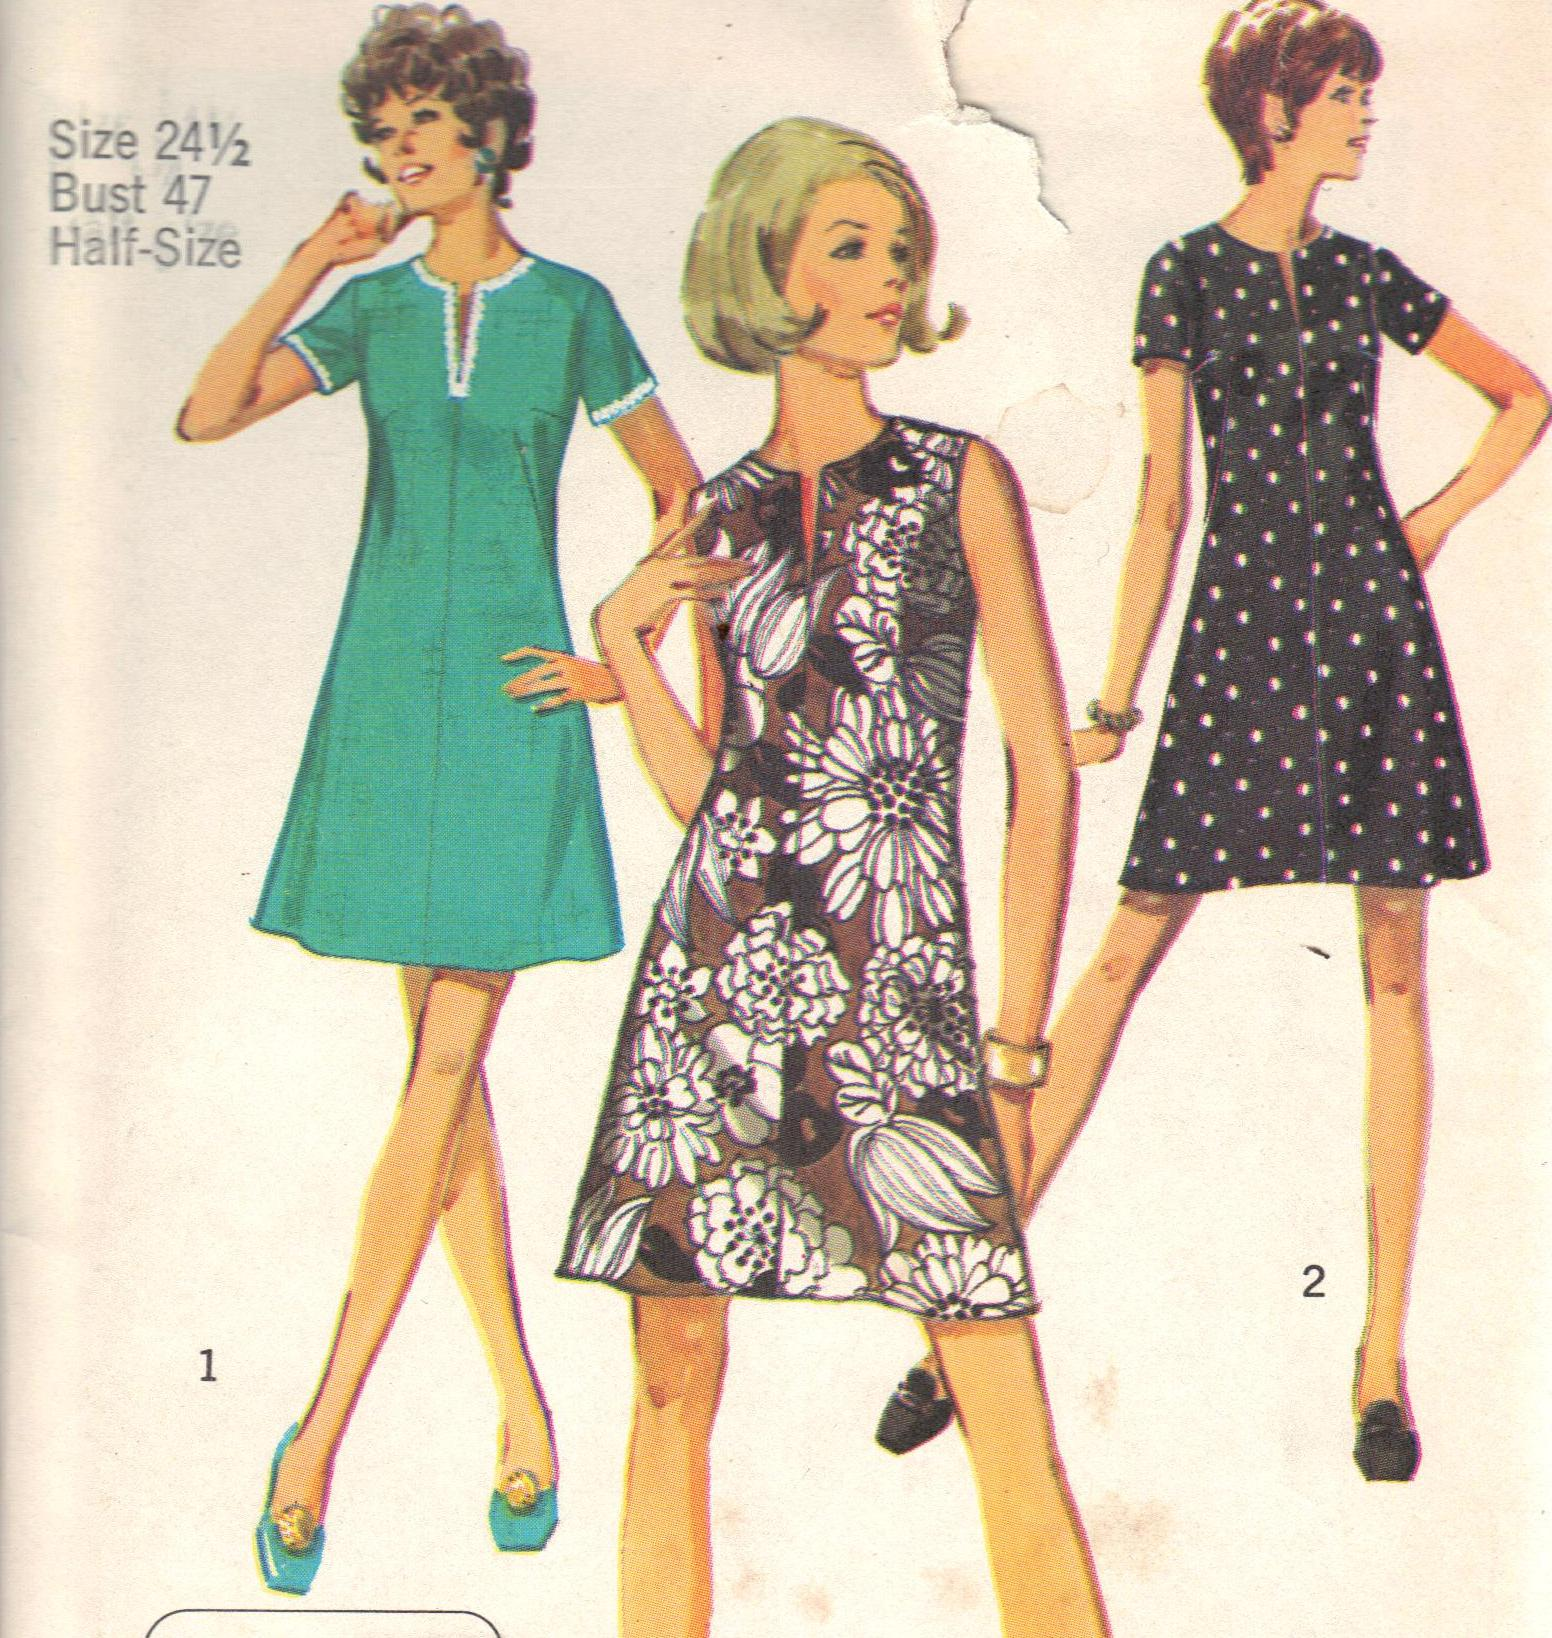 Vintage Dress Sewing Pattern 8702 Simplicity Bust 47 Inches